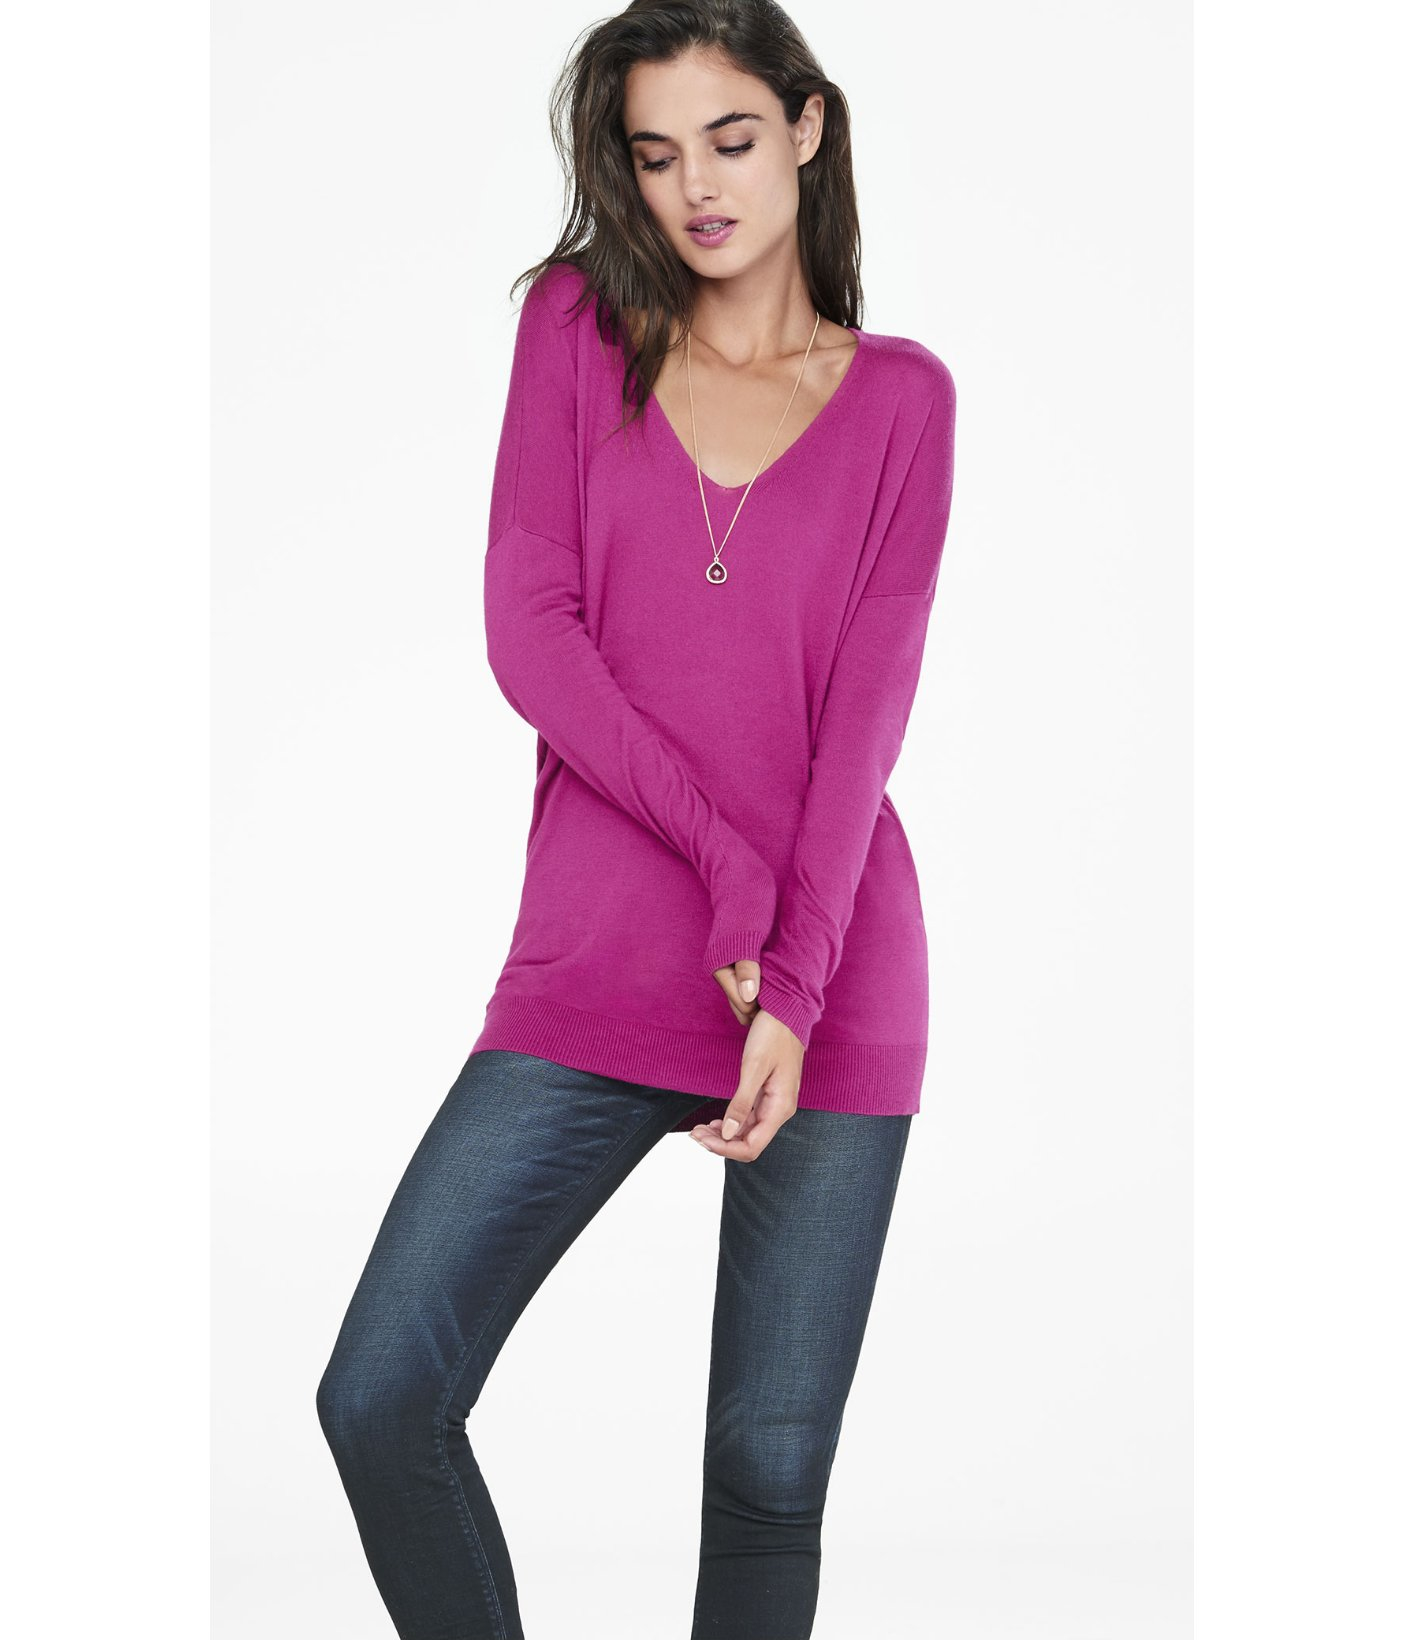 Express Hint Of Cashmere V-neck Wedge Tunic Sweater in Purple | Lyst